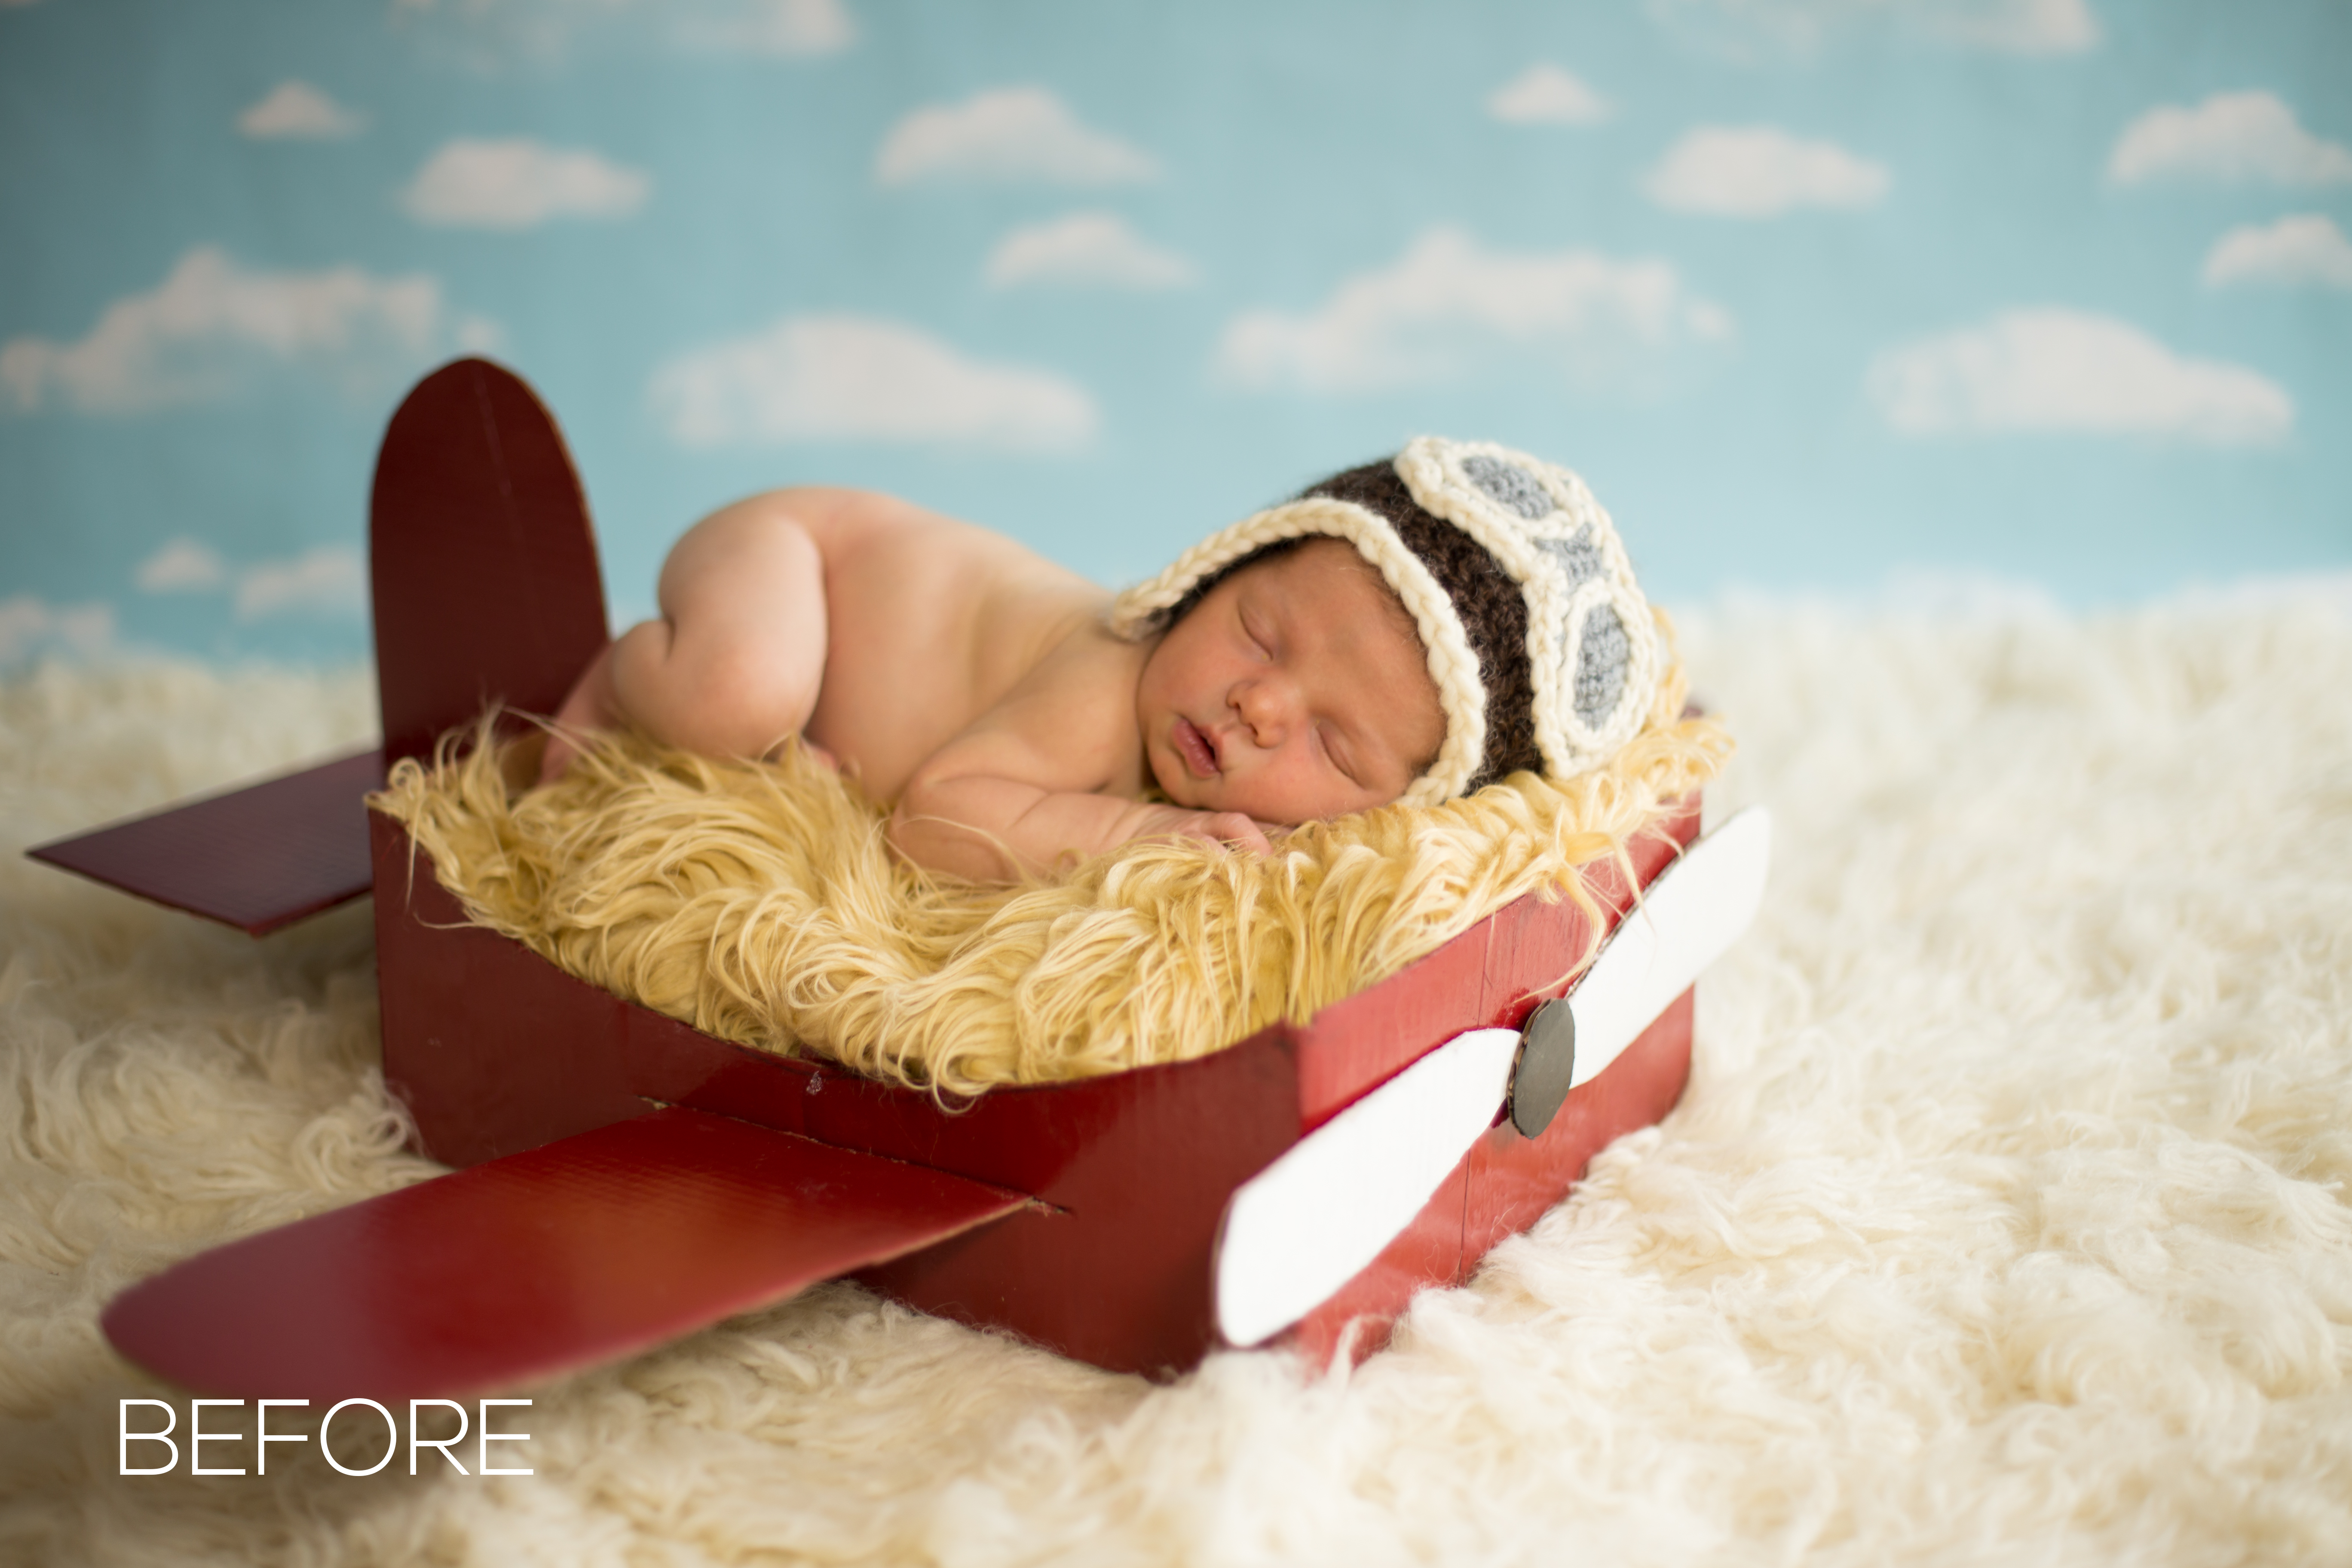 miniIMG_1431SOOC Making a Newborn Prop Photo Pop Blueprints Guest Bloggers Uncategorized